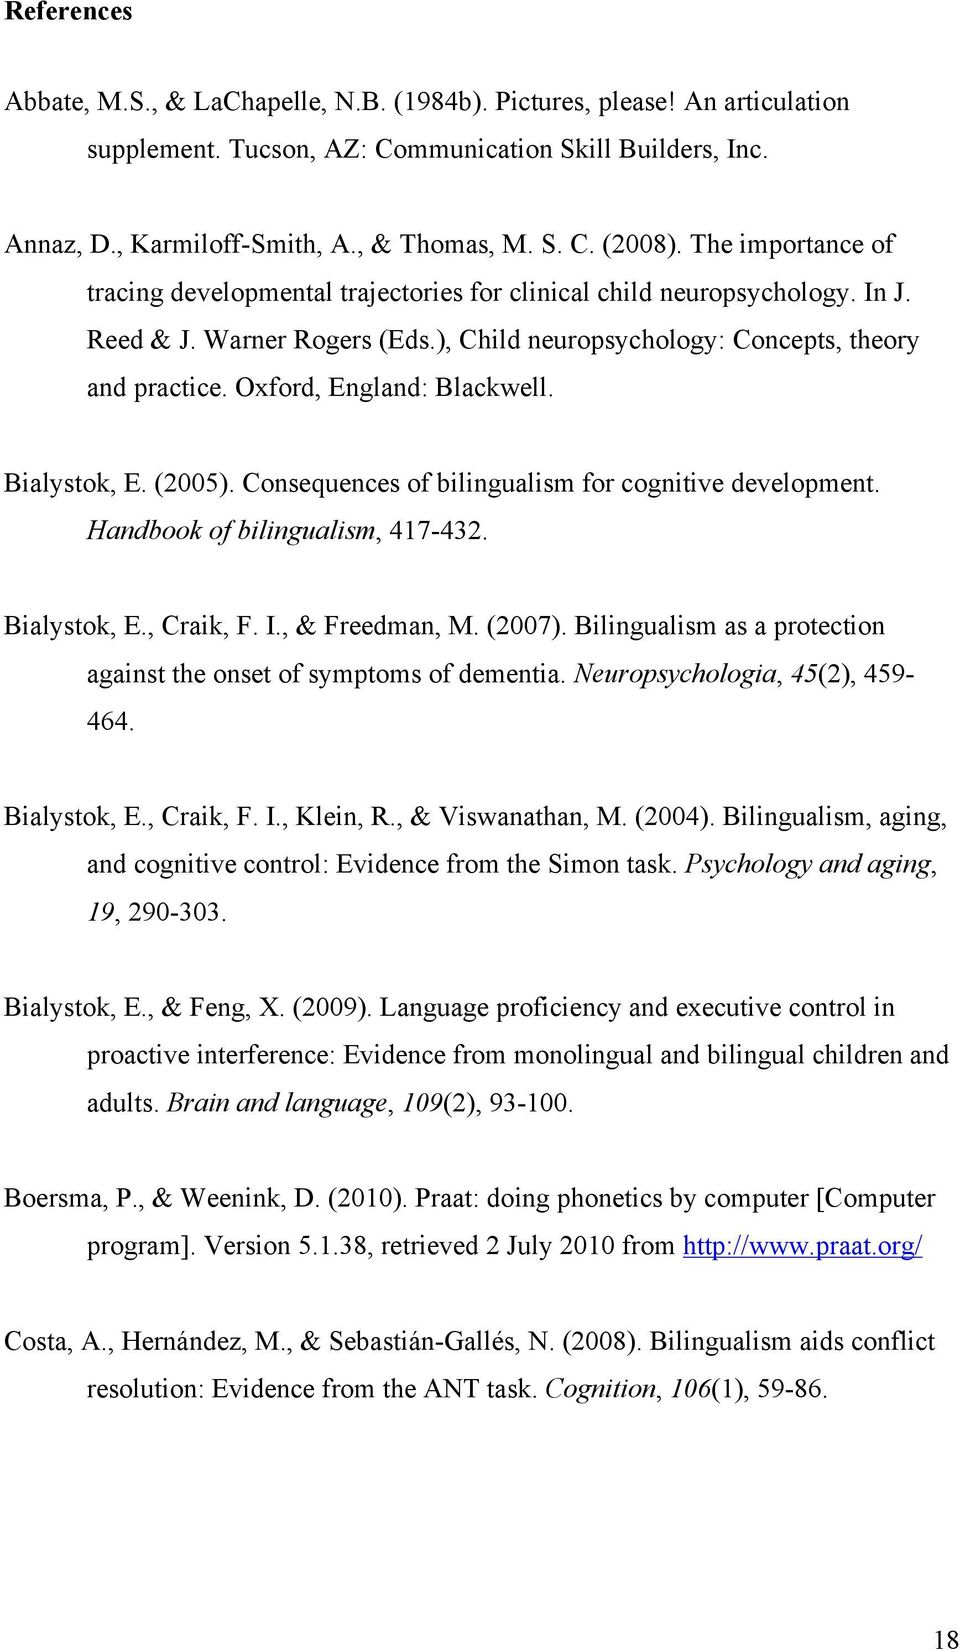 Oxford, England: Blackwell. Bialystok, E. (2005). Consequences of bilingualism for cognitive development. Handbook of bilingualism, 417-432. Bialystok, E., Craik, F. I., & Freedman, M. (2007).